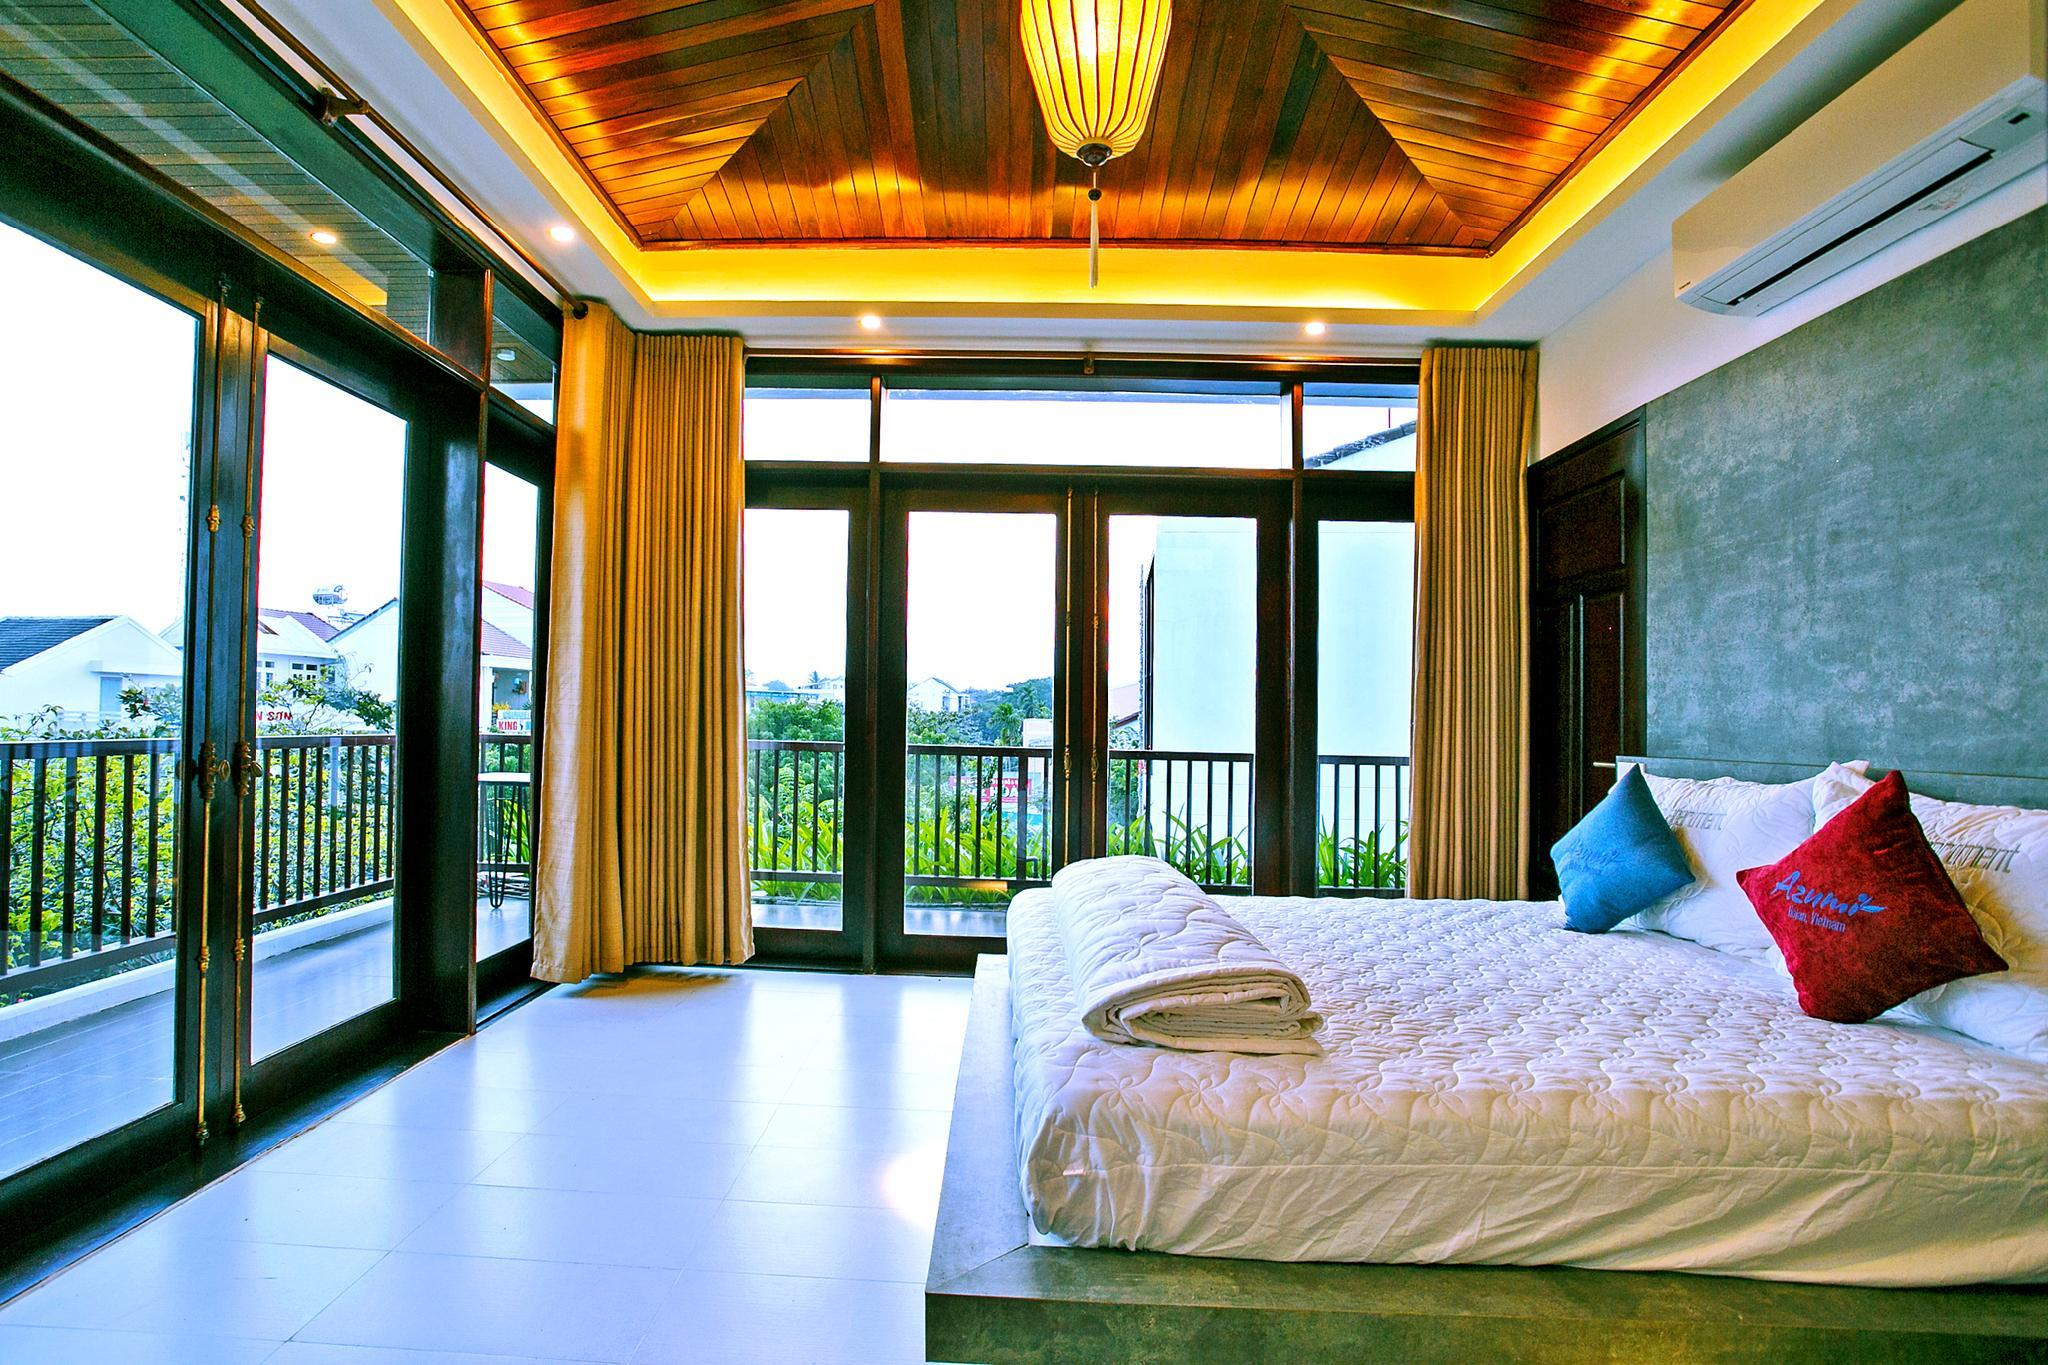 Deals On Azumi 01 Bedroom Balcony 2nd Floor Apartment Hoian In Hoi An Promotional Room Prices